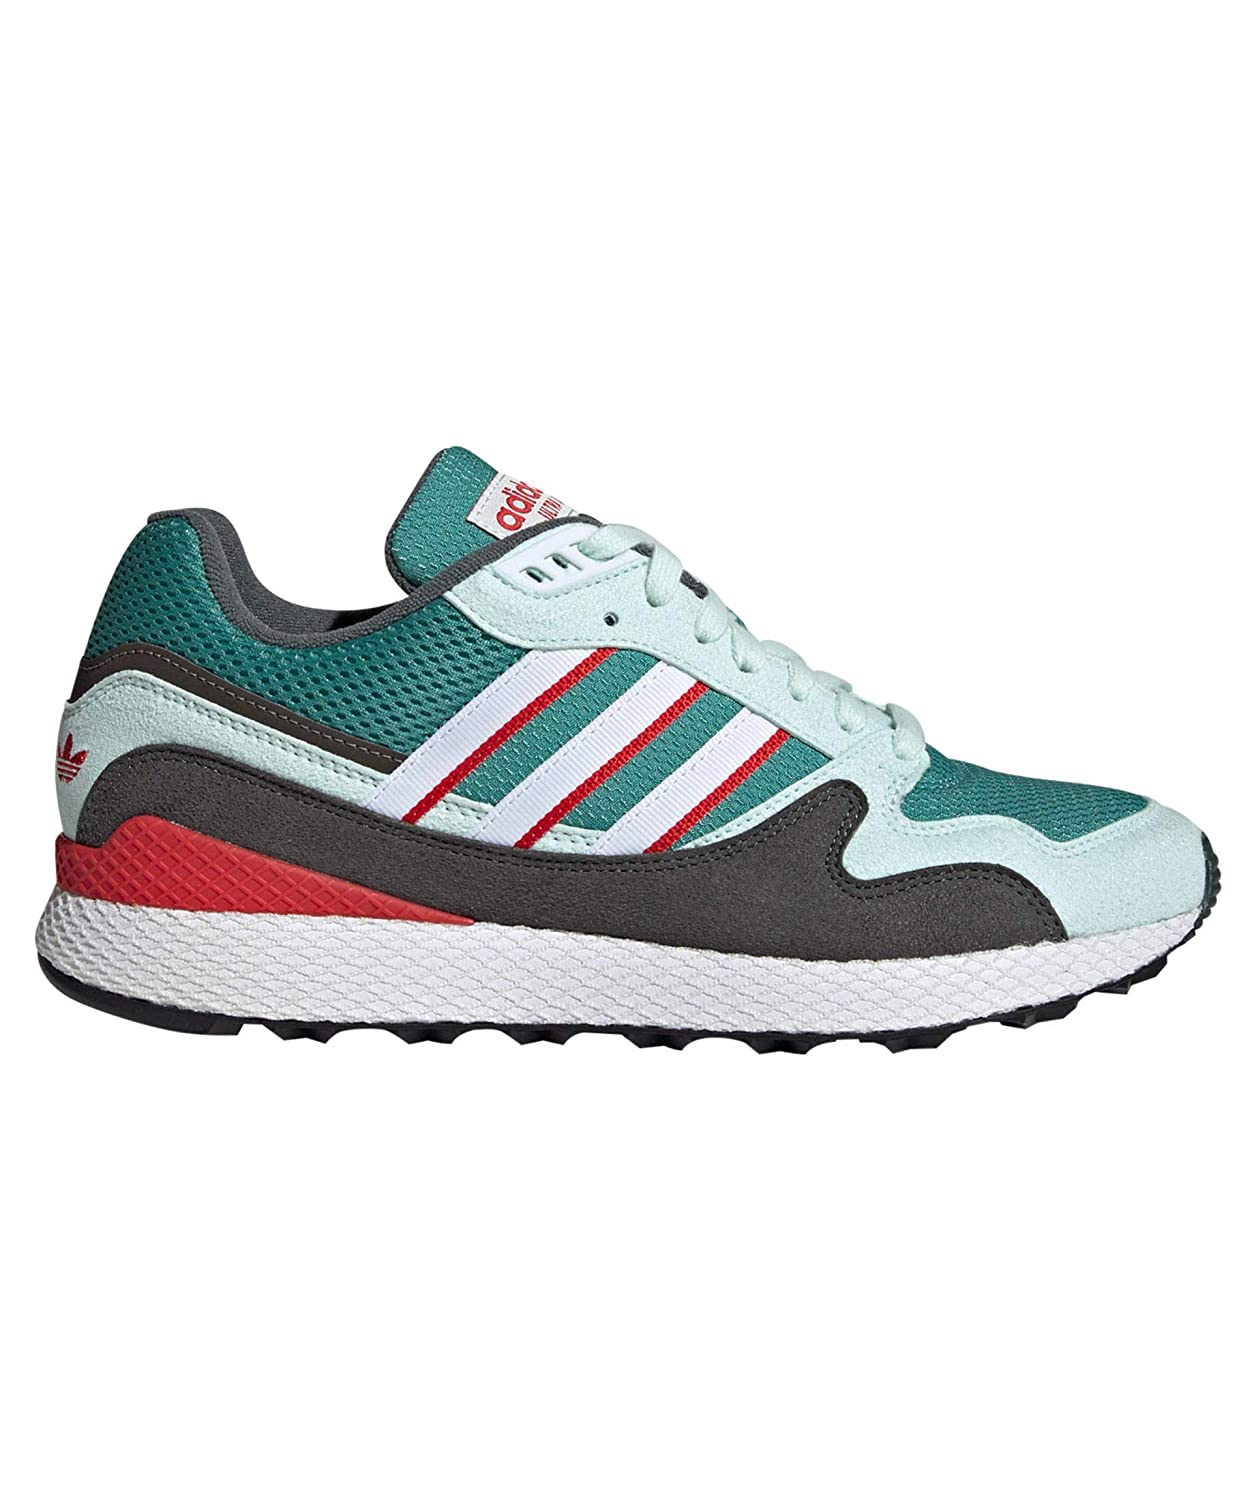 Acquista online adidas Originals Ultra Tech, True Green-Footwear White-Lush Red, 7 miglior prezzo offerta